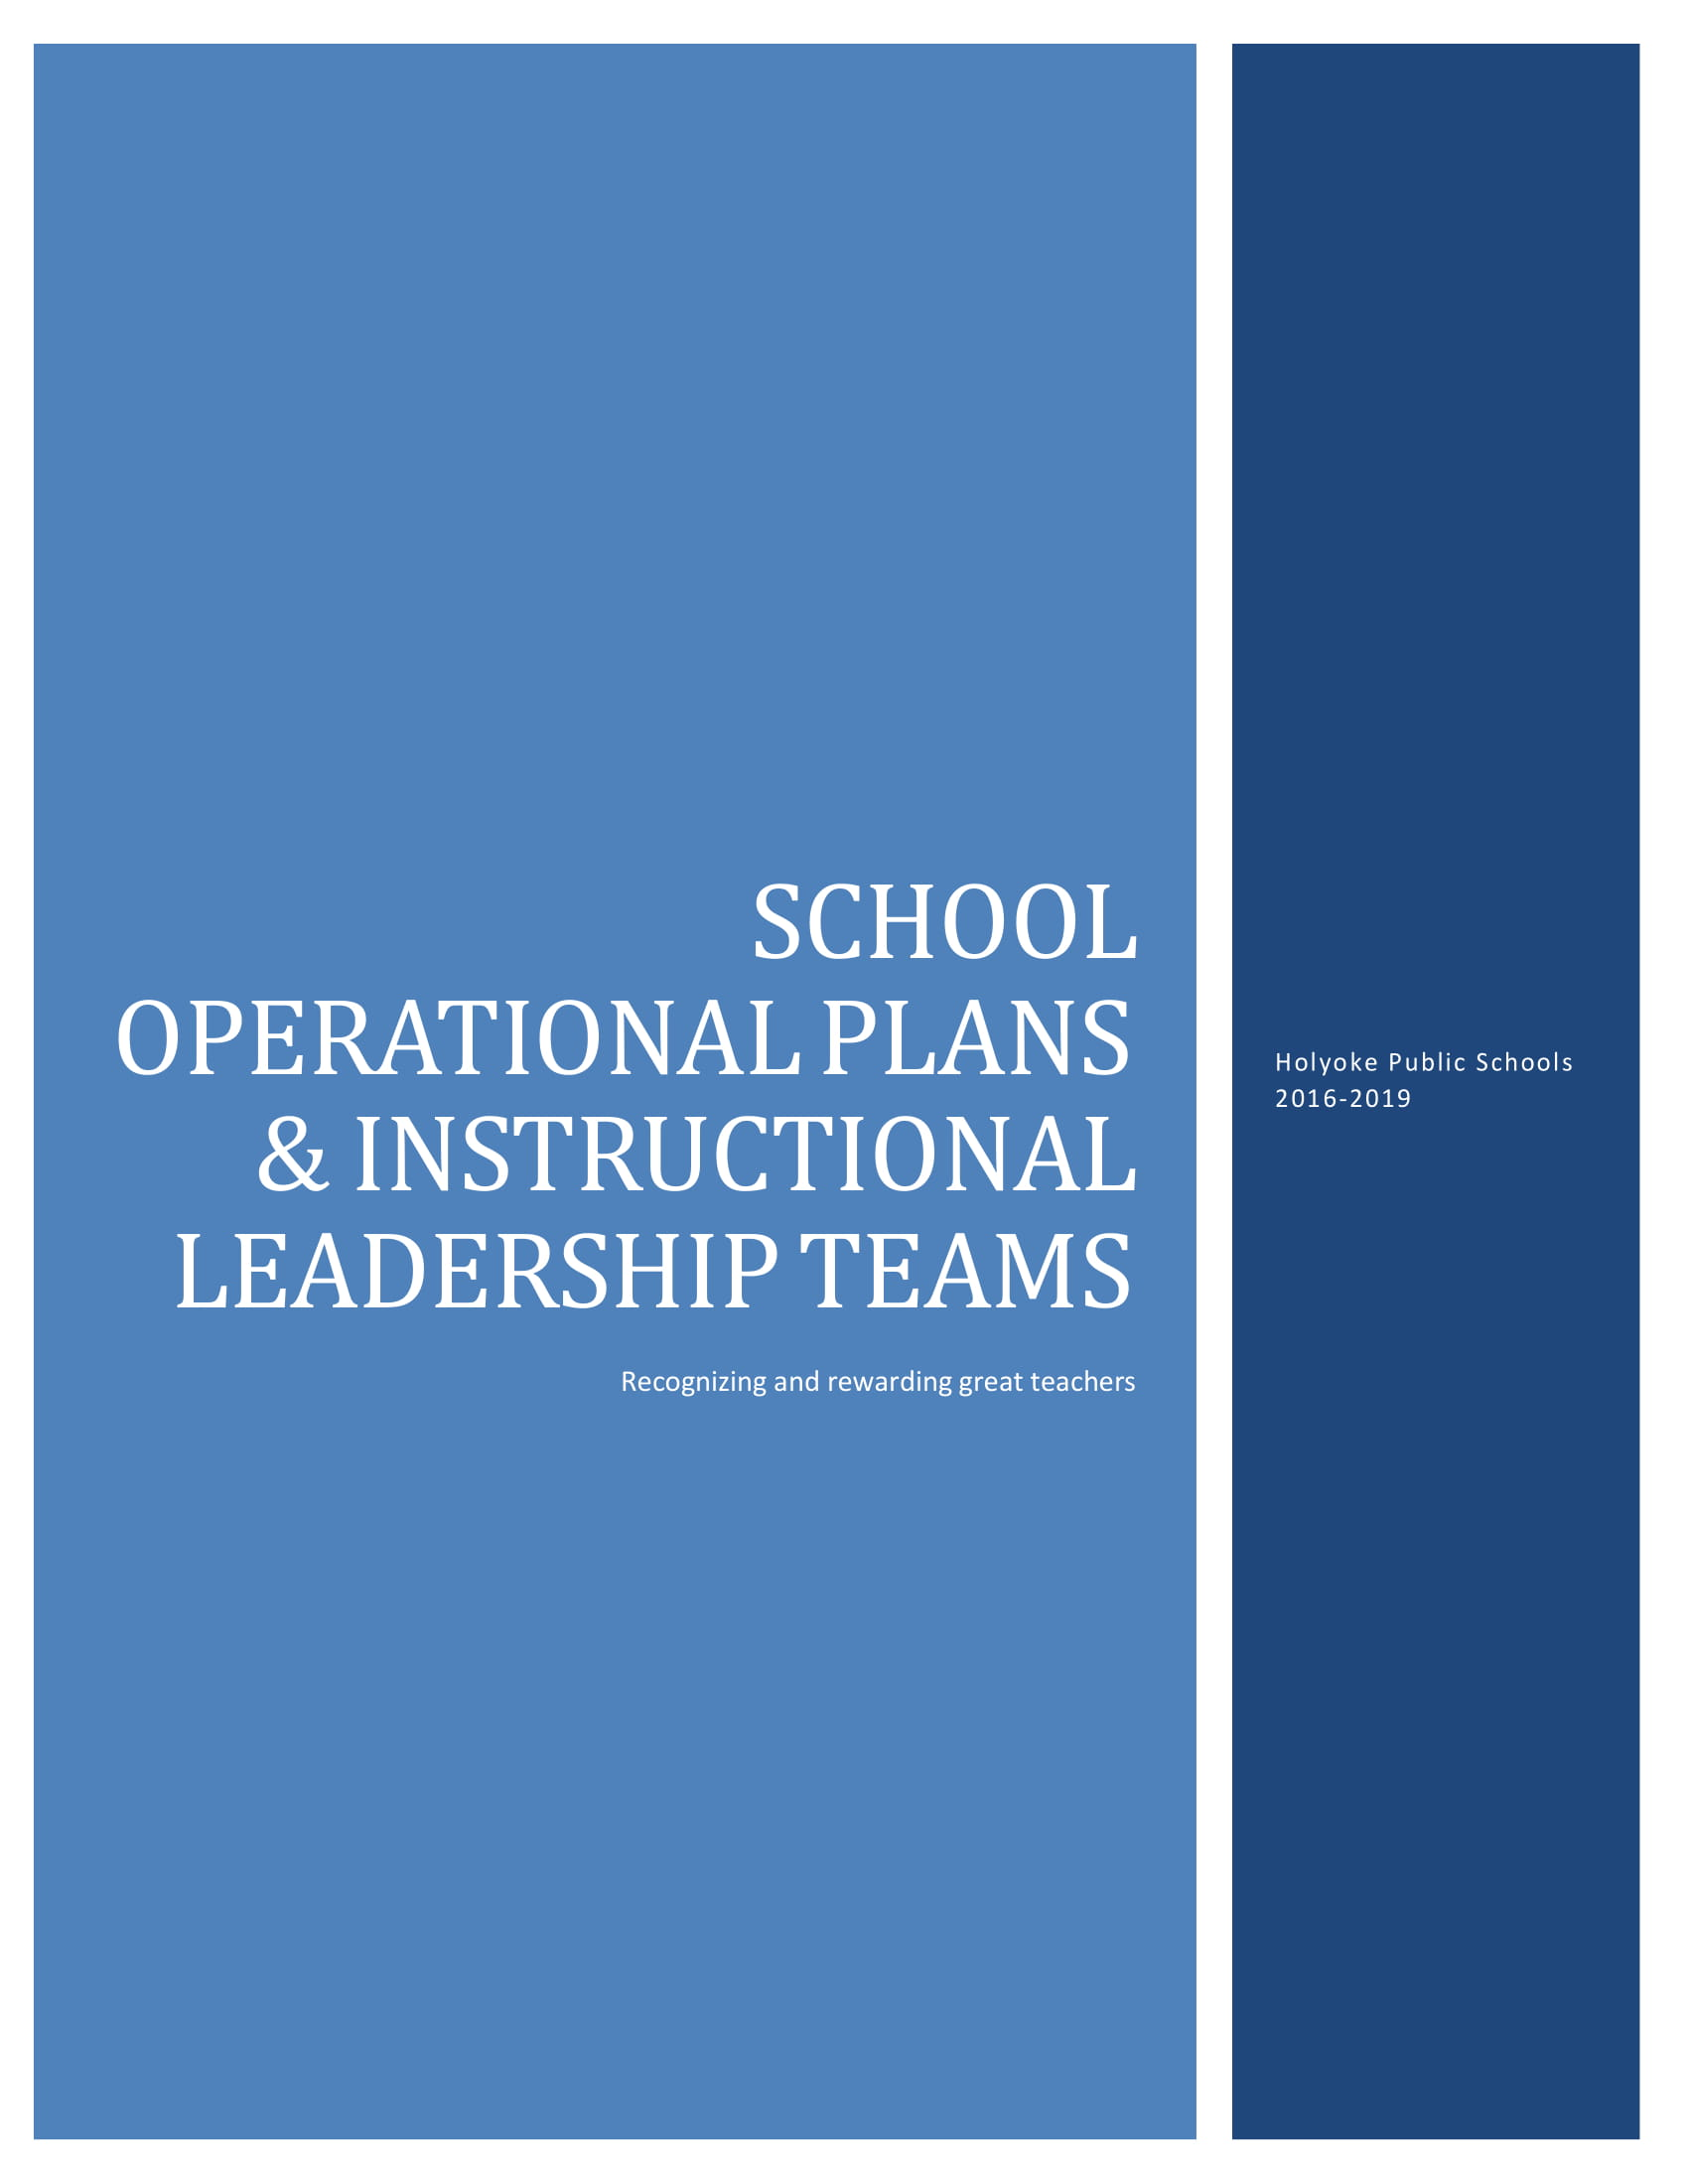 school operational plans and instructional leadership teams example 1